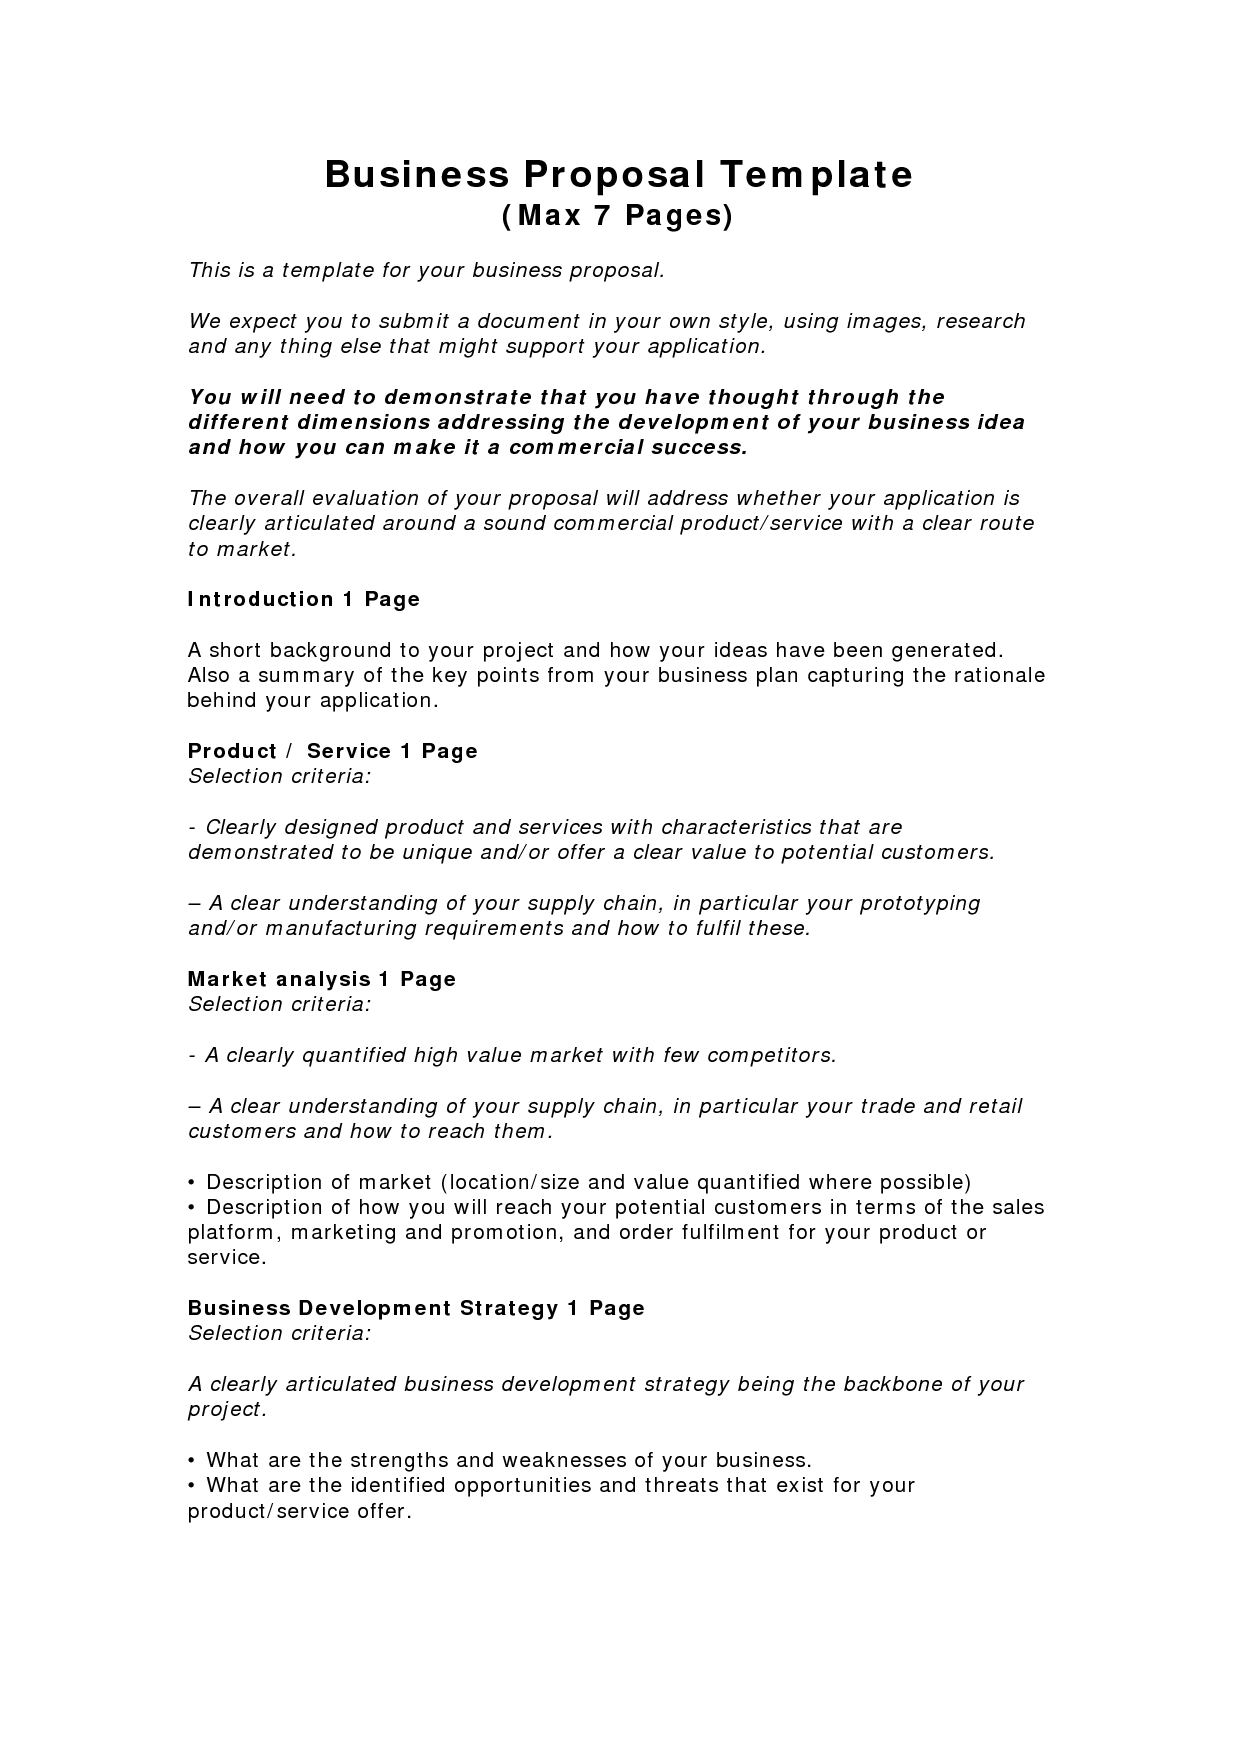 Business Proposal Templates Examples  Business Proposal Template With Short Proposal Template